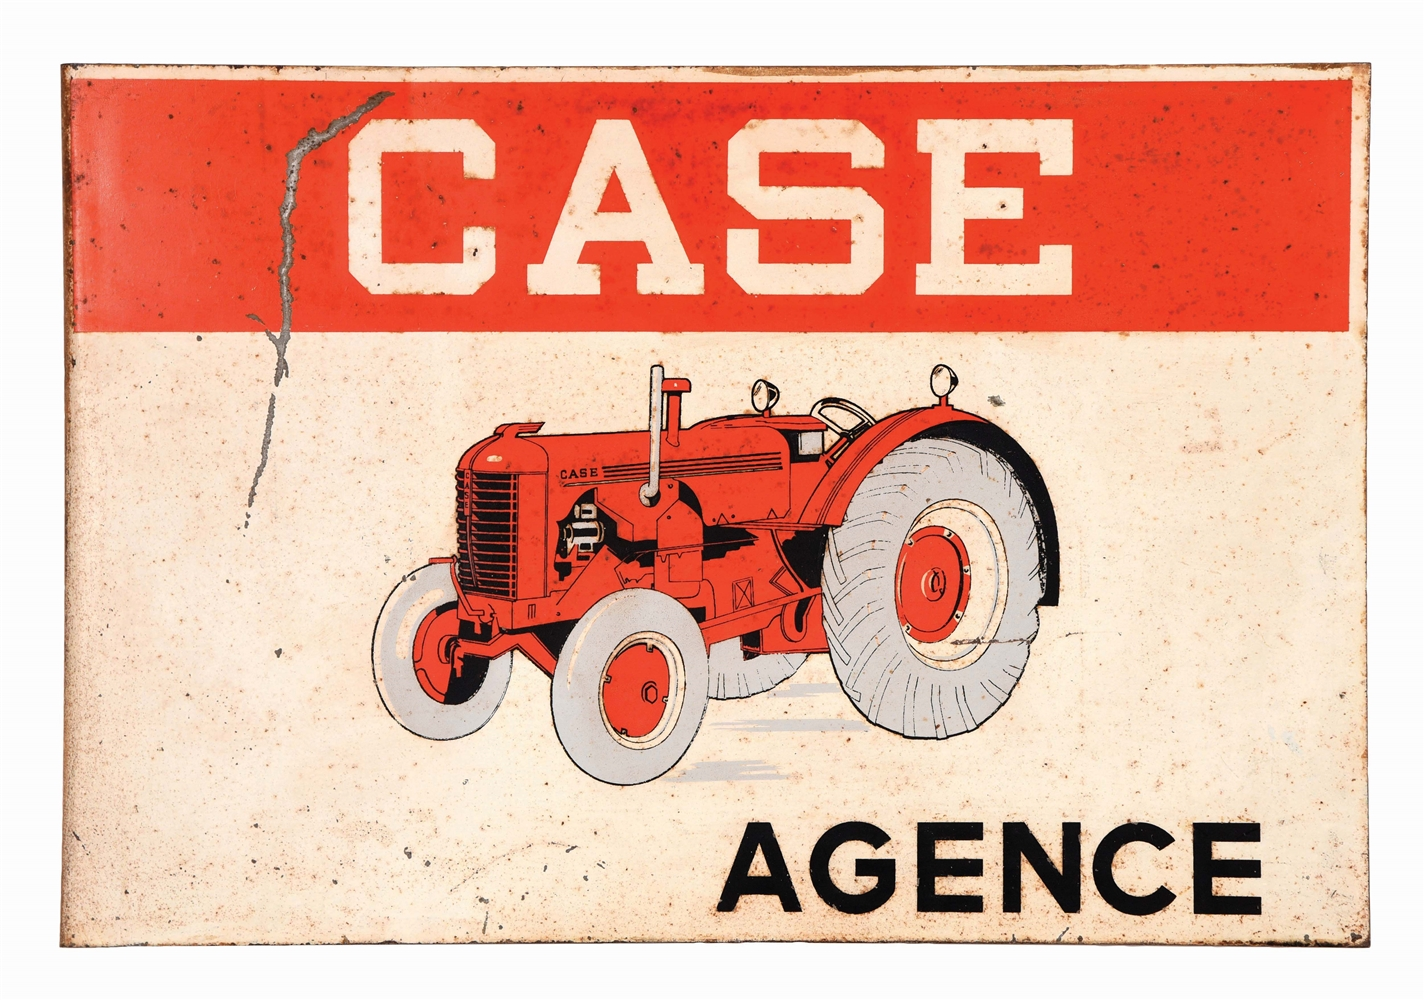 CASE TRACTORS AGENCY TIN FLANGE SIGN W/ TRACTOR GRAPHIC.